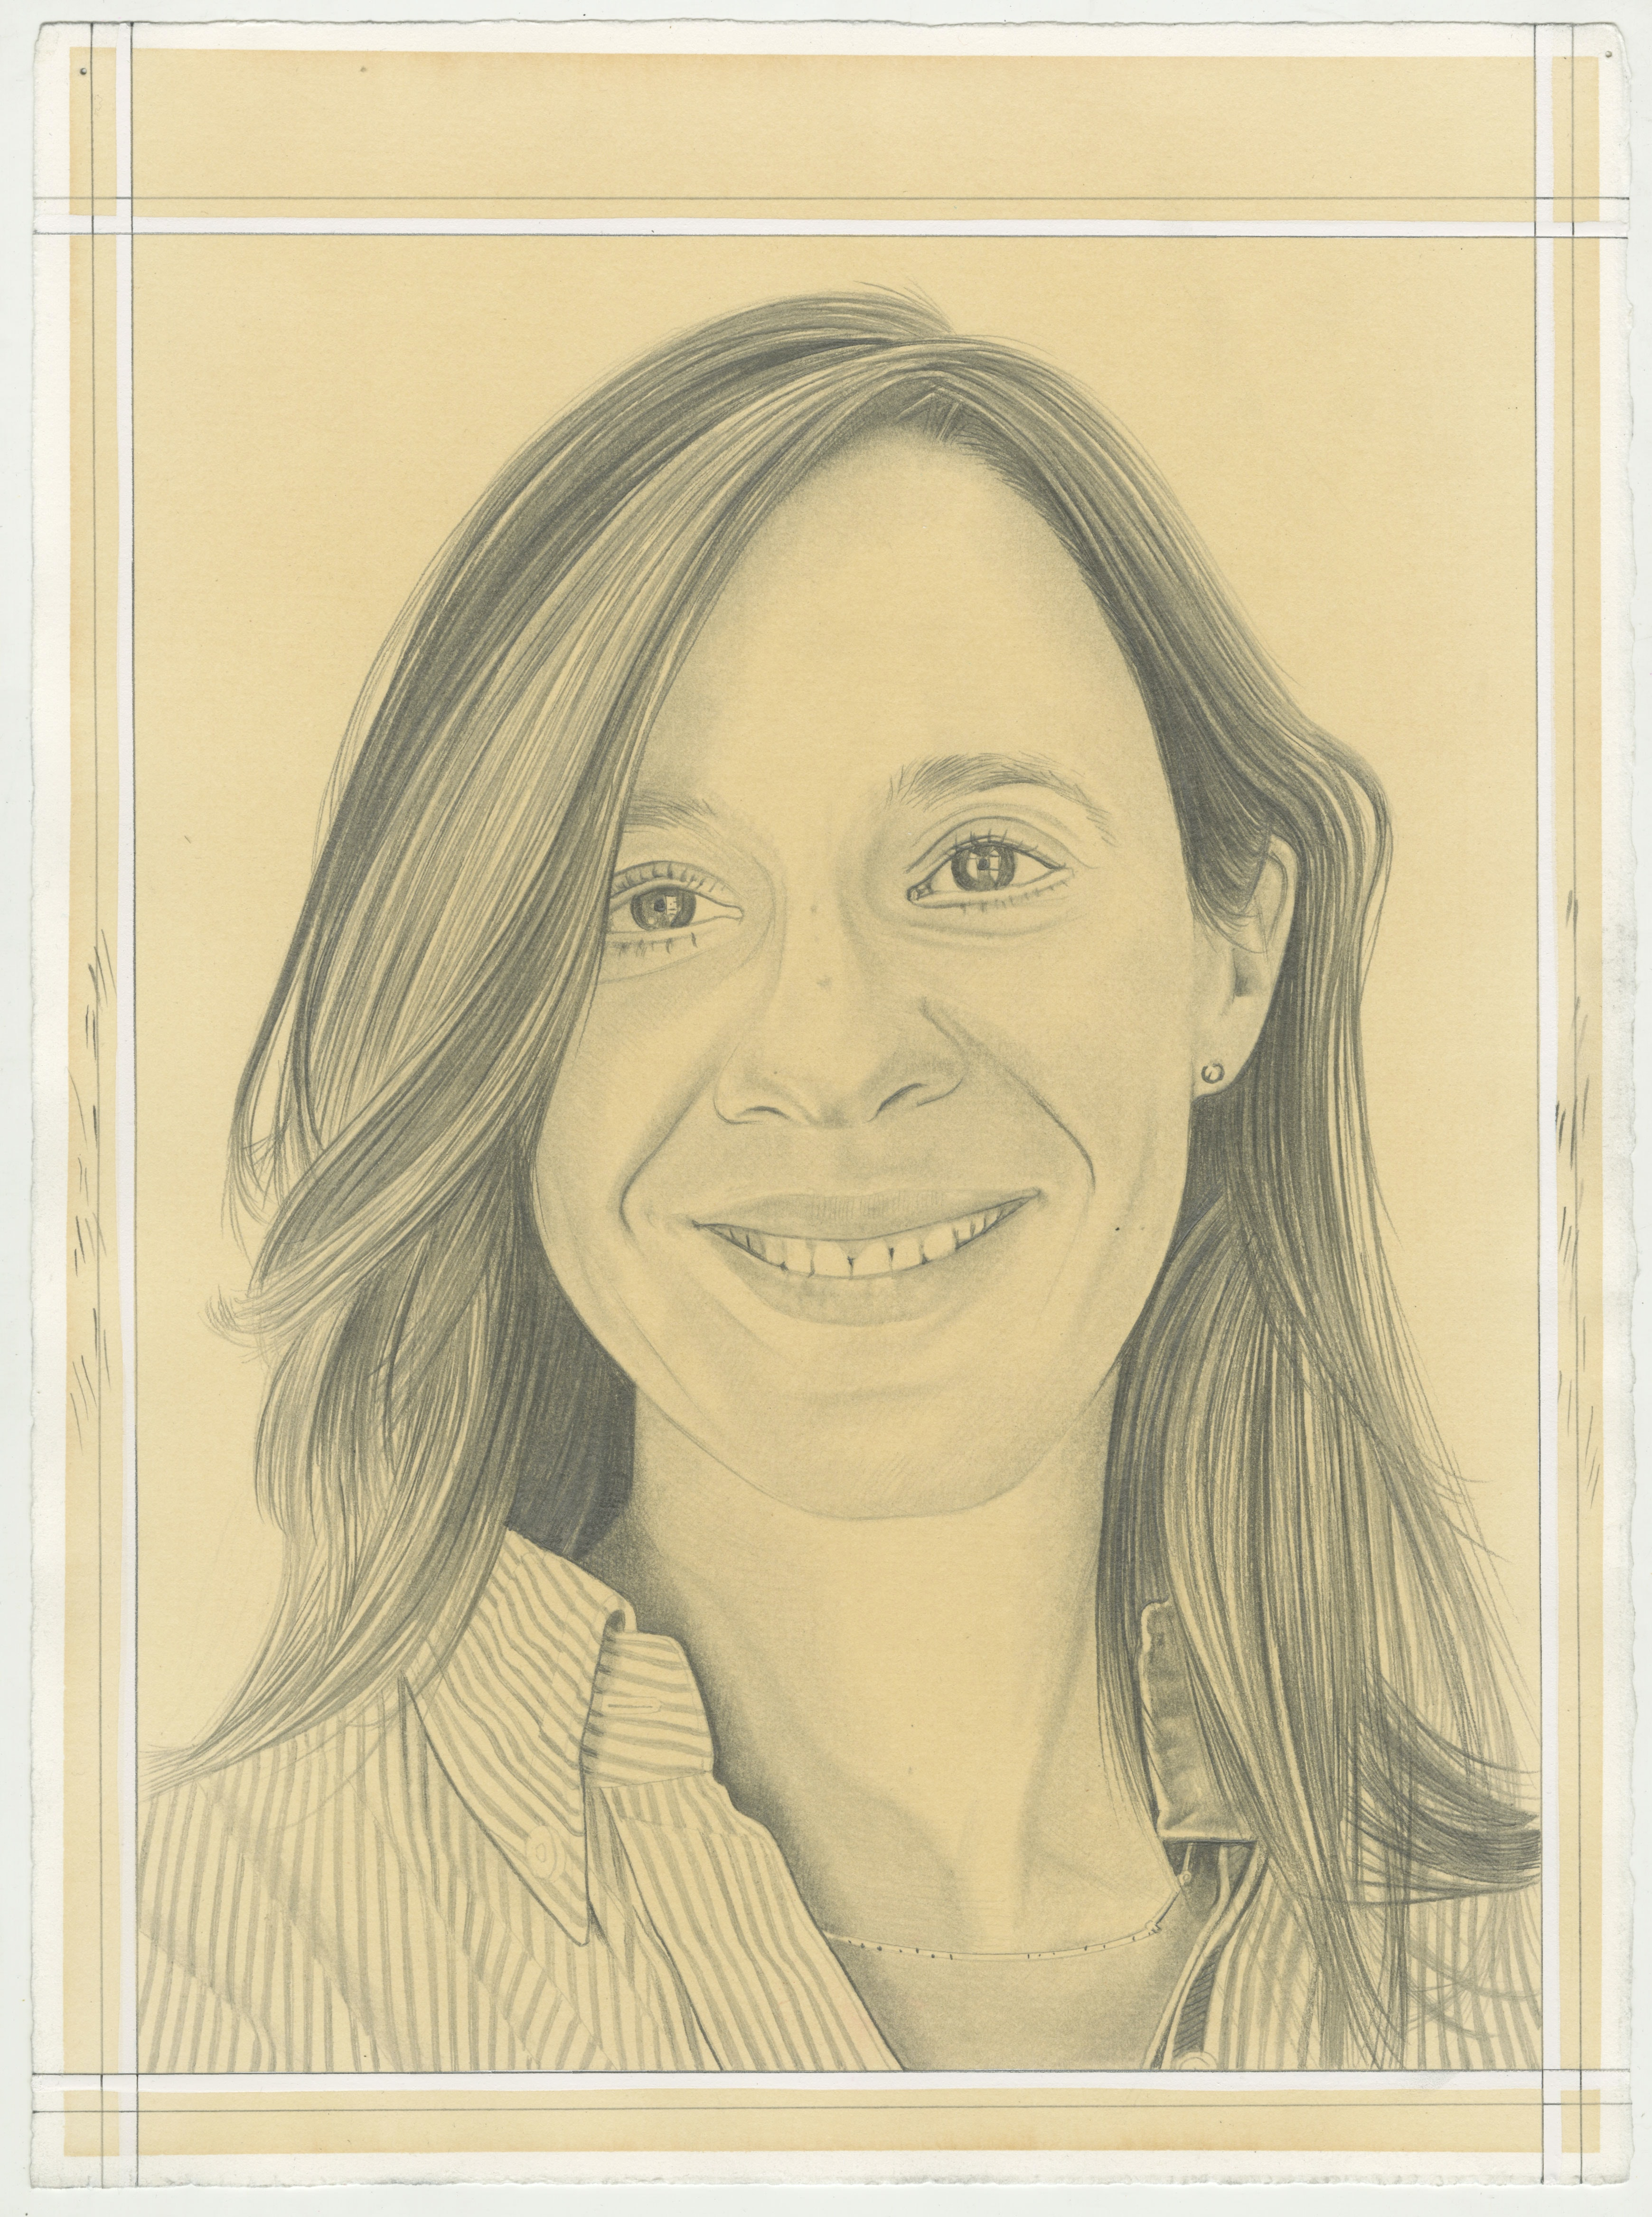 Portrait of Amanda Gluibizzi, pencil on paper by Phong H. Bui.